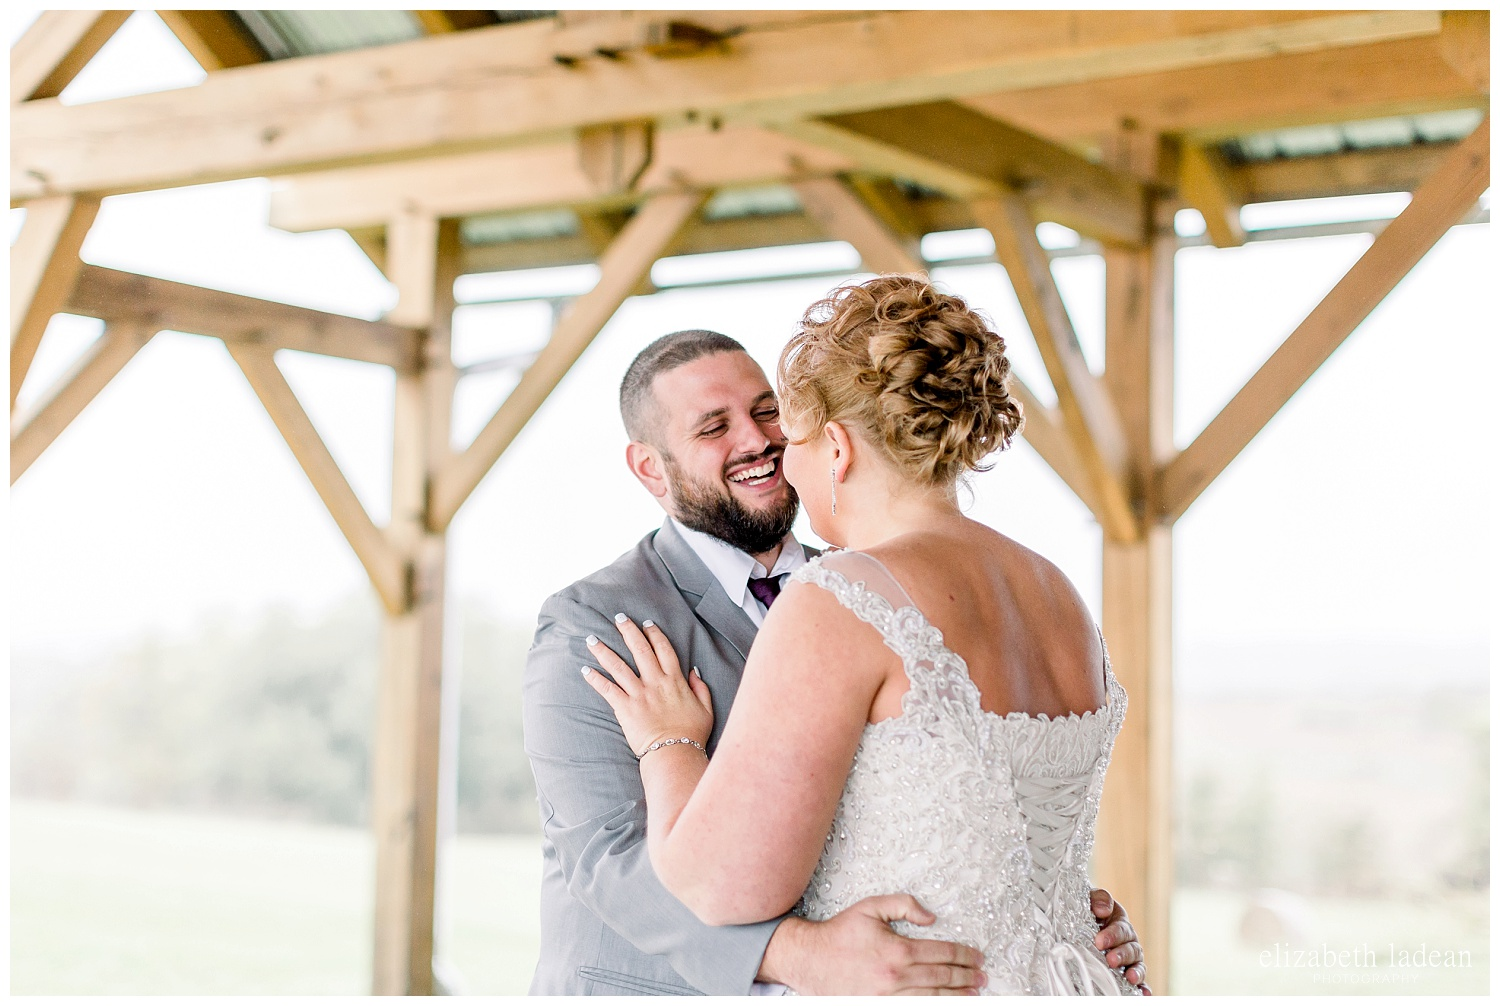 Weston-Timber-Barn-Wedding-Photography-L+A-elizabeth-ladean0photo_1861.jpg